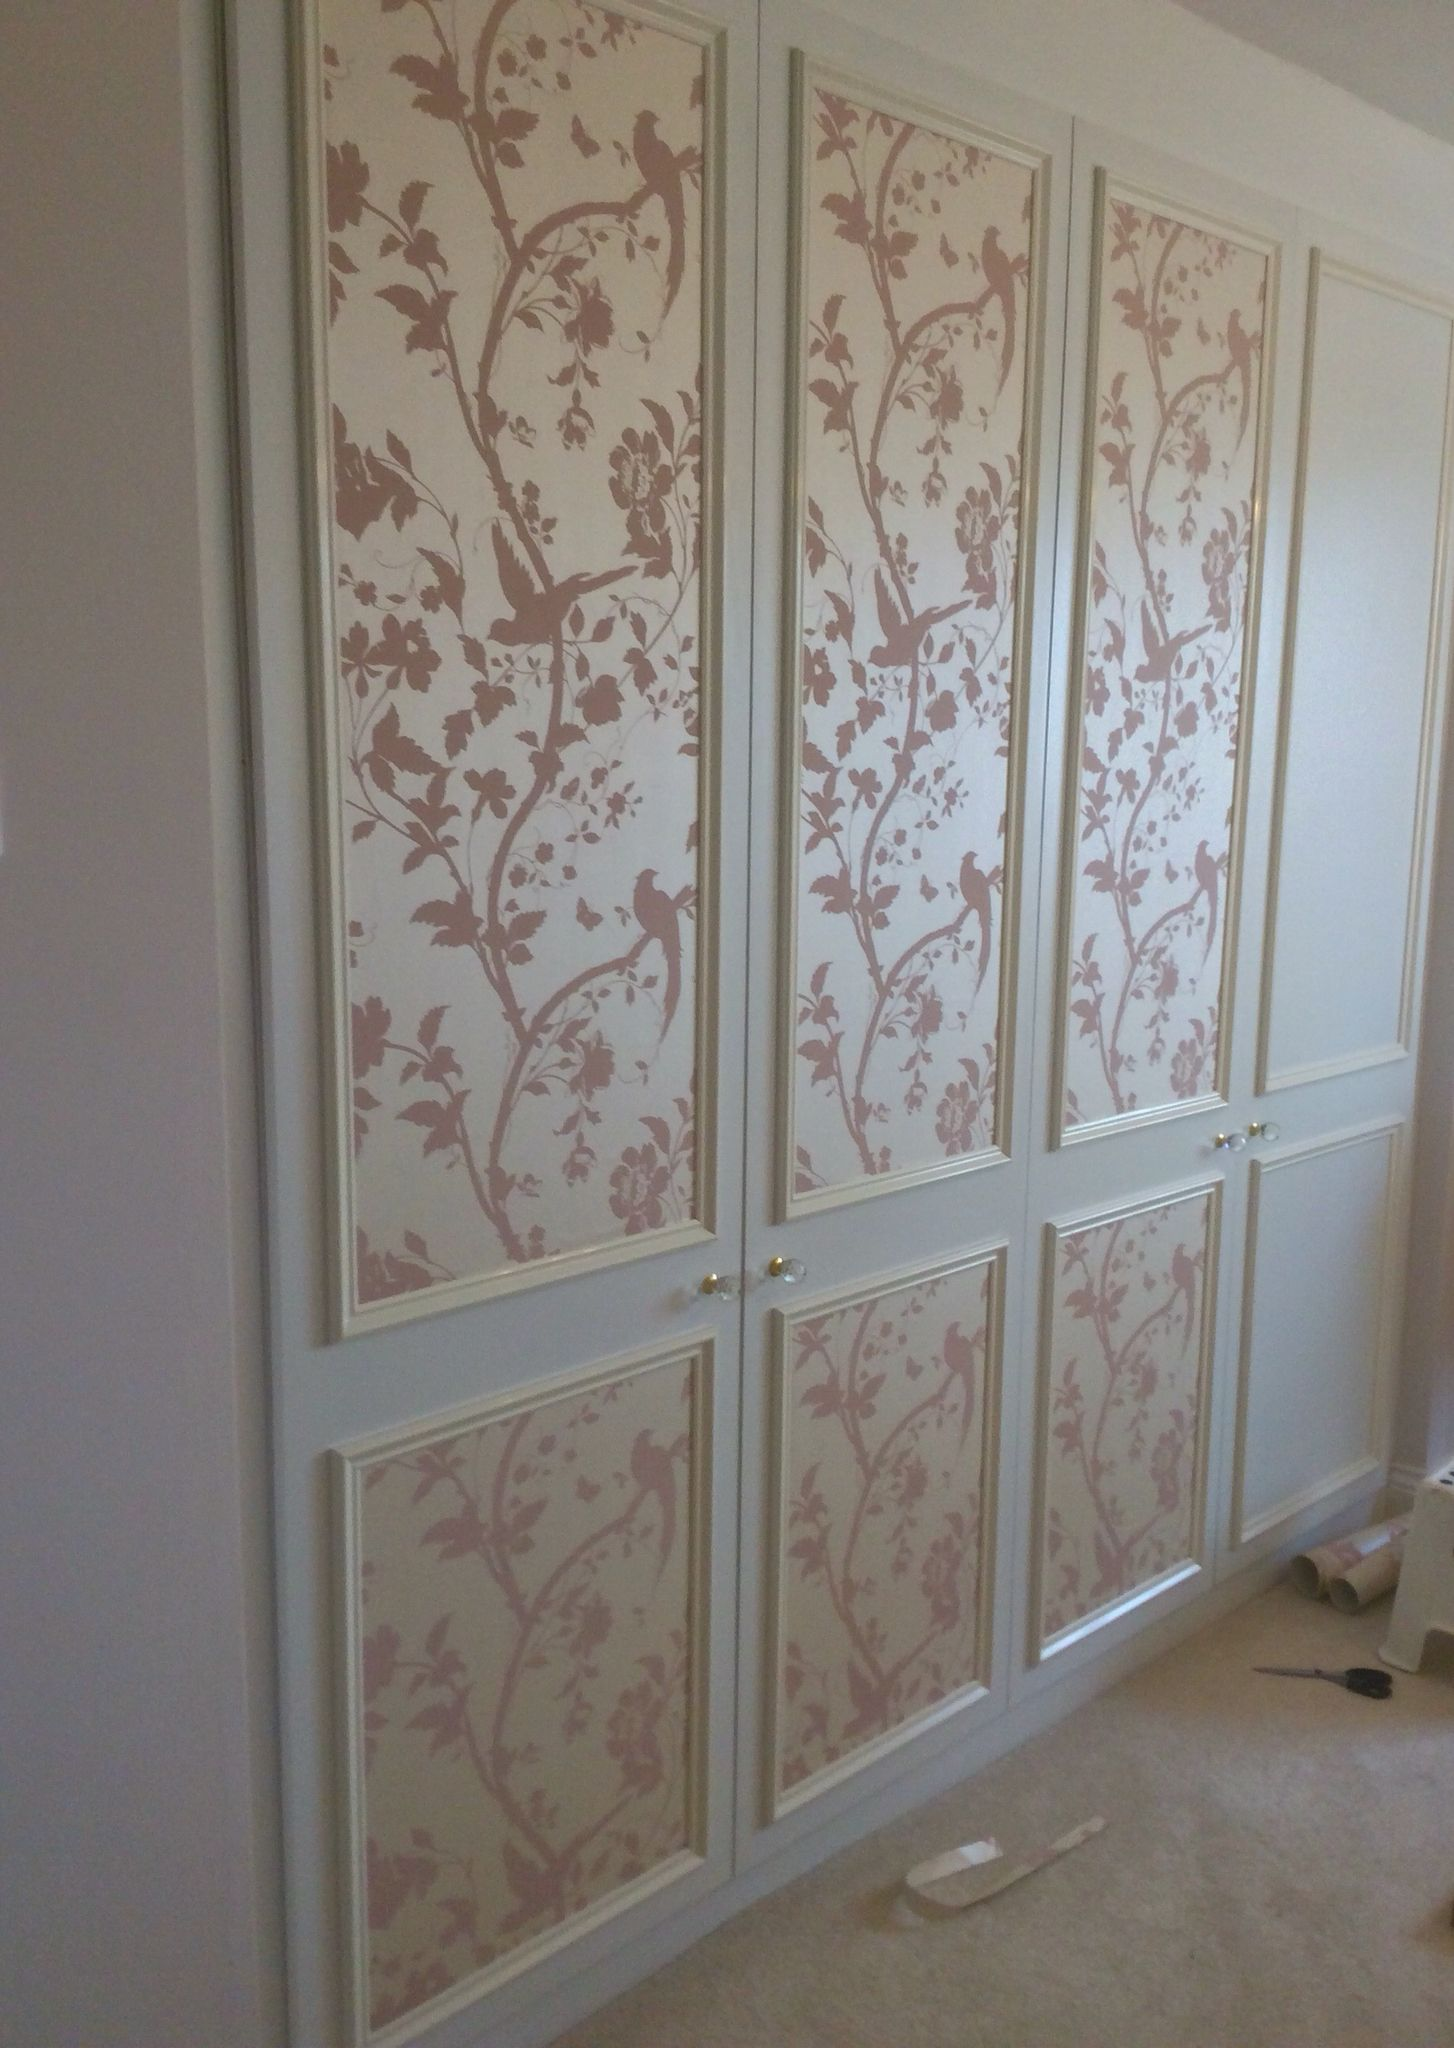 Laura Ashley Wallpaper Oriental Garden In Chalk Pink Put On The Fitted Wardrobe Doors Opposite Matching Feature Wall Our Bedroom